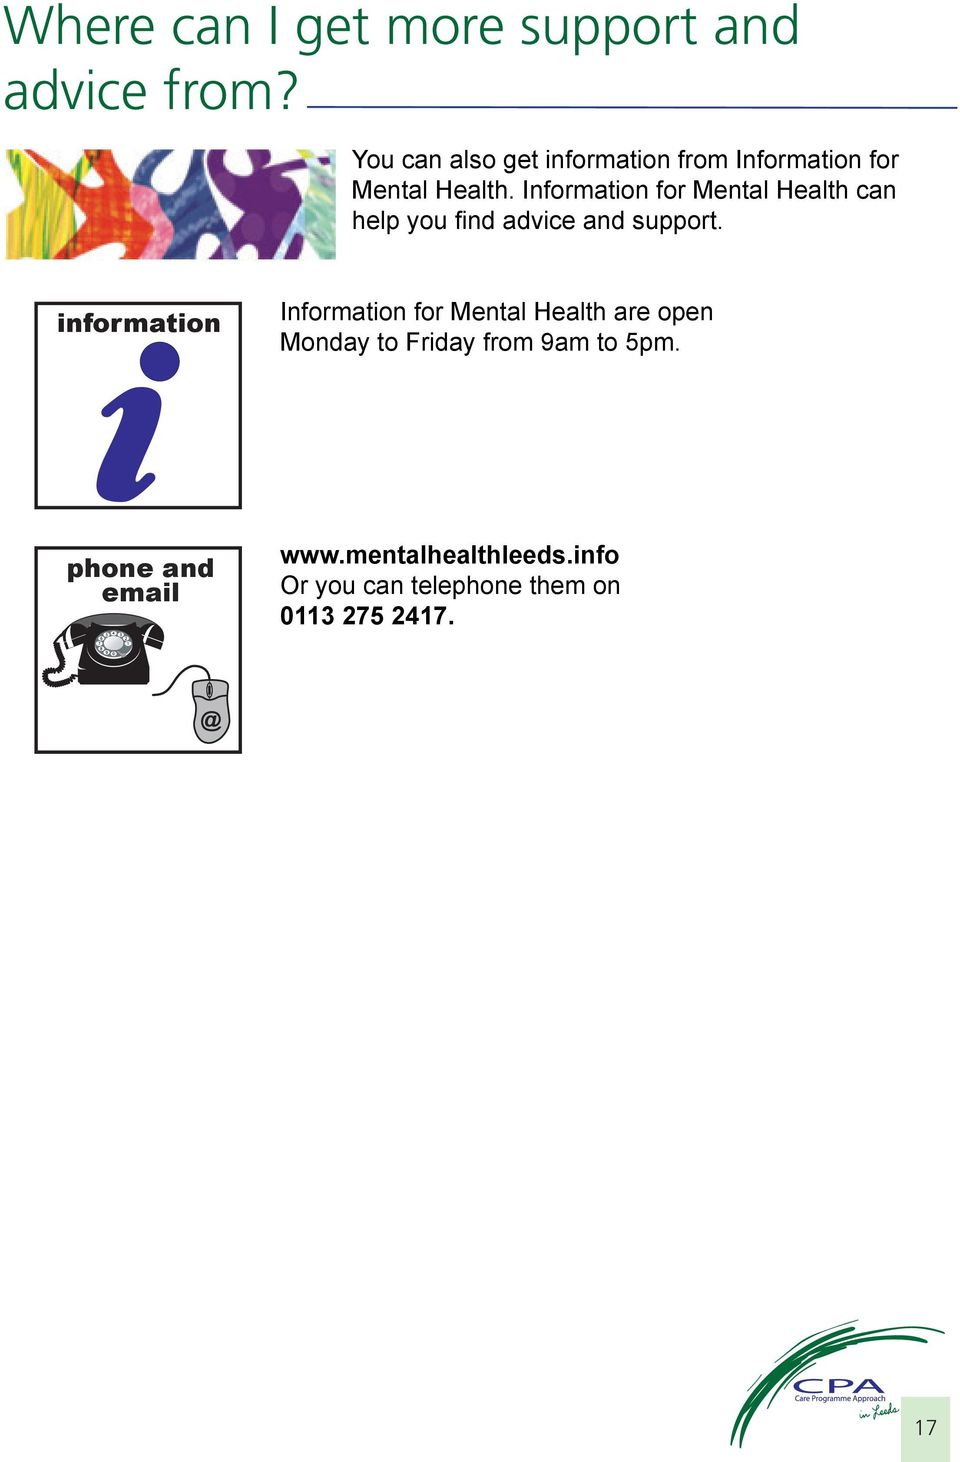 Information for Mental Health can help you find advice and support.